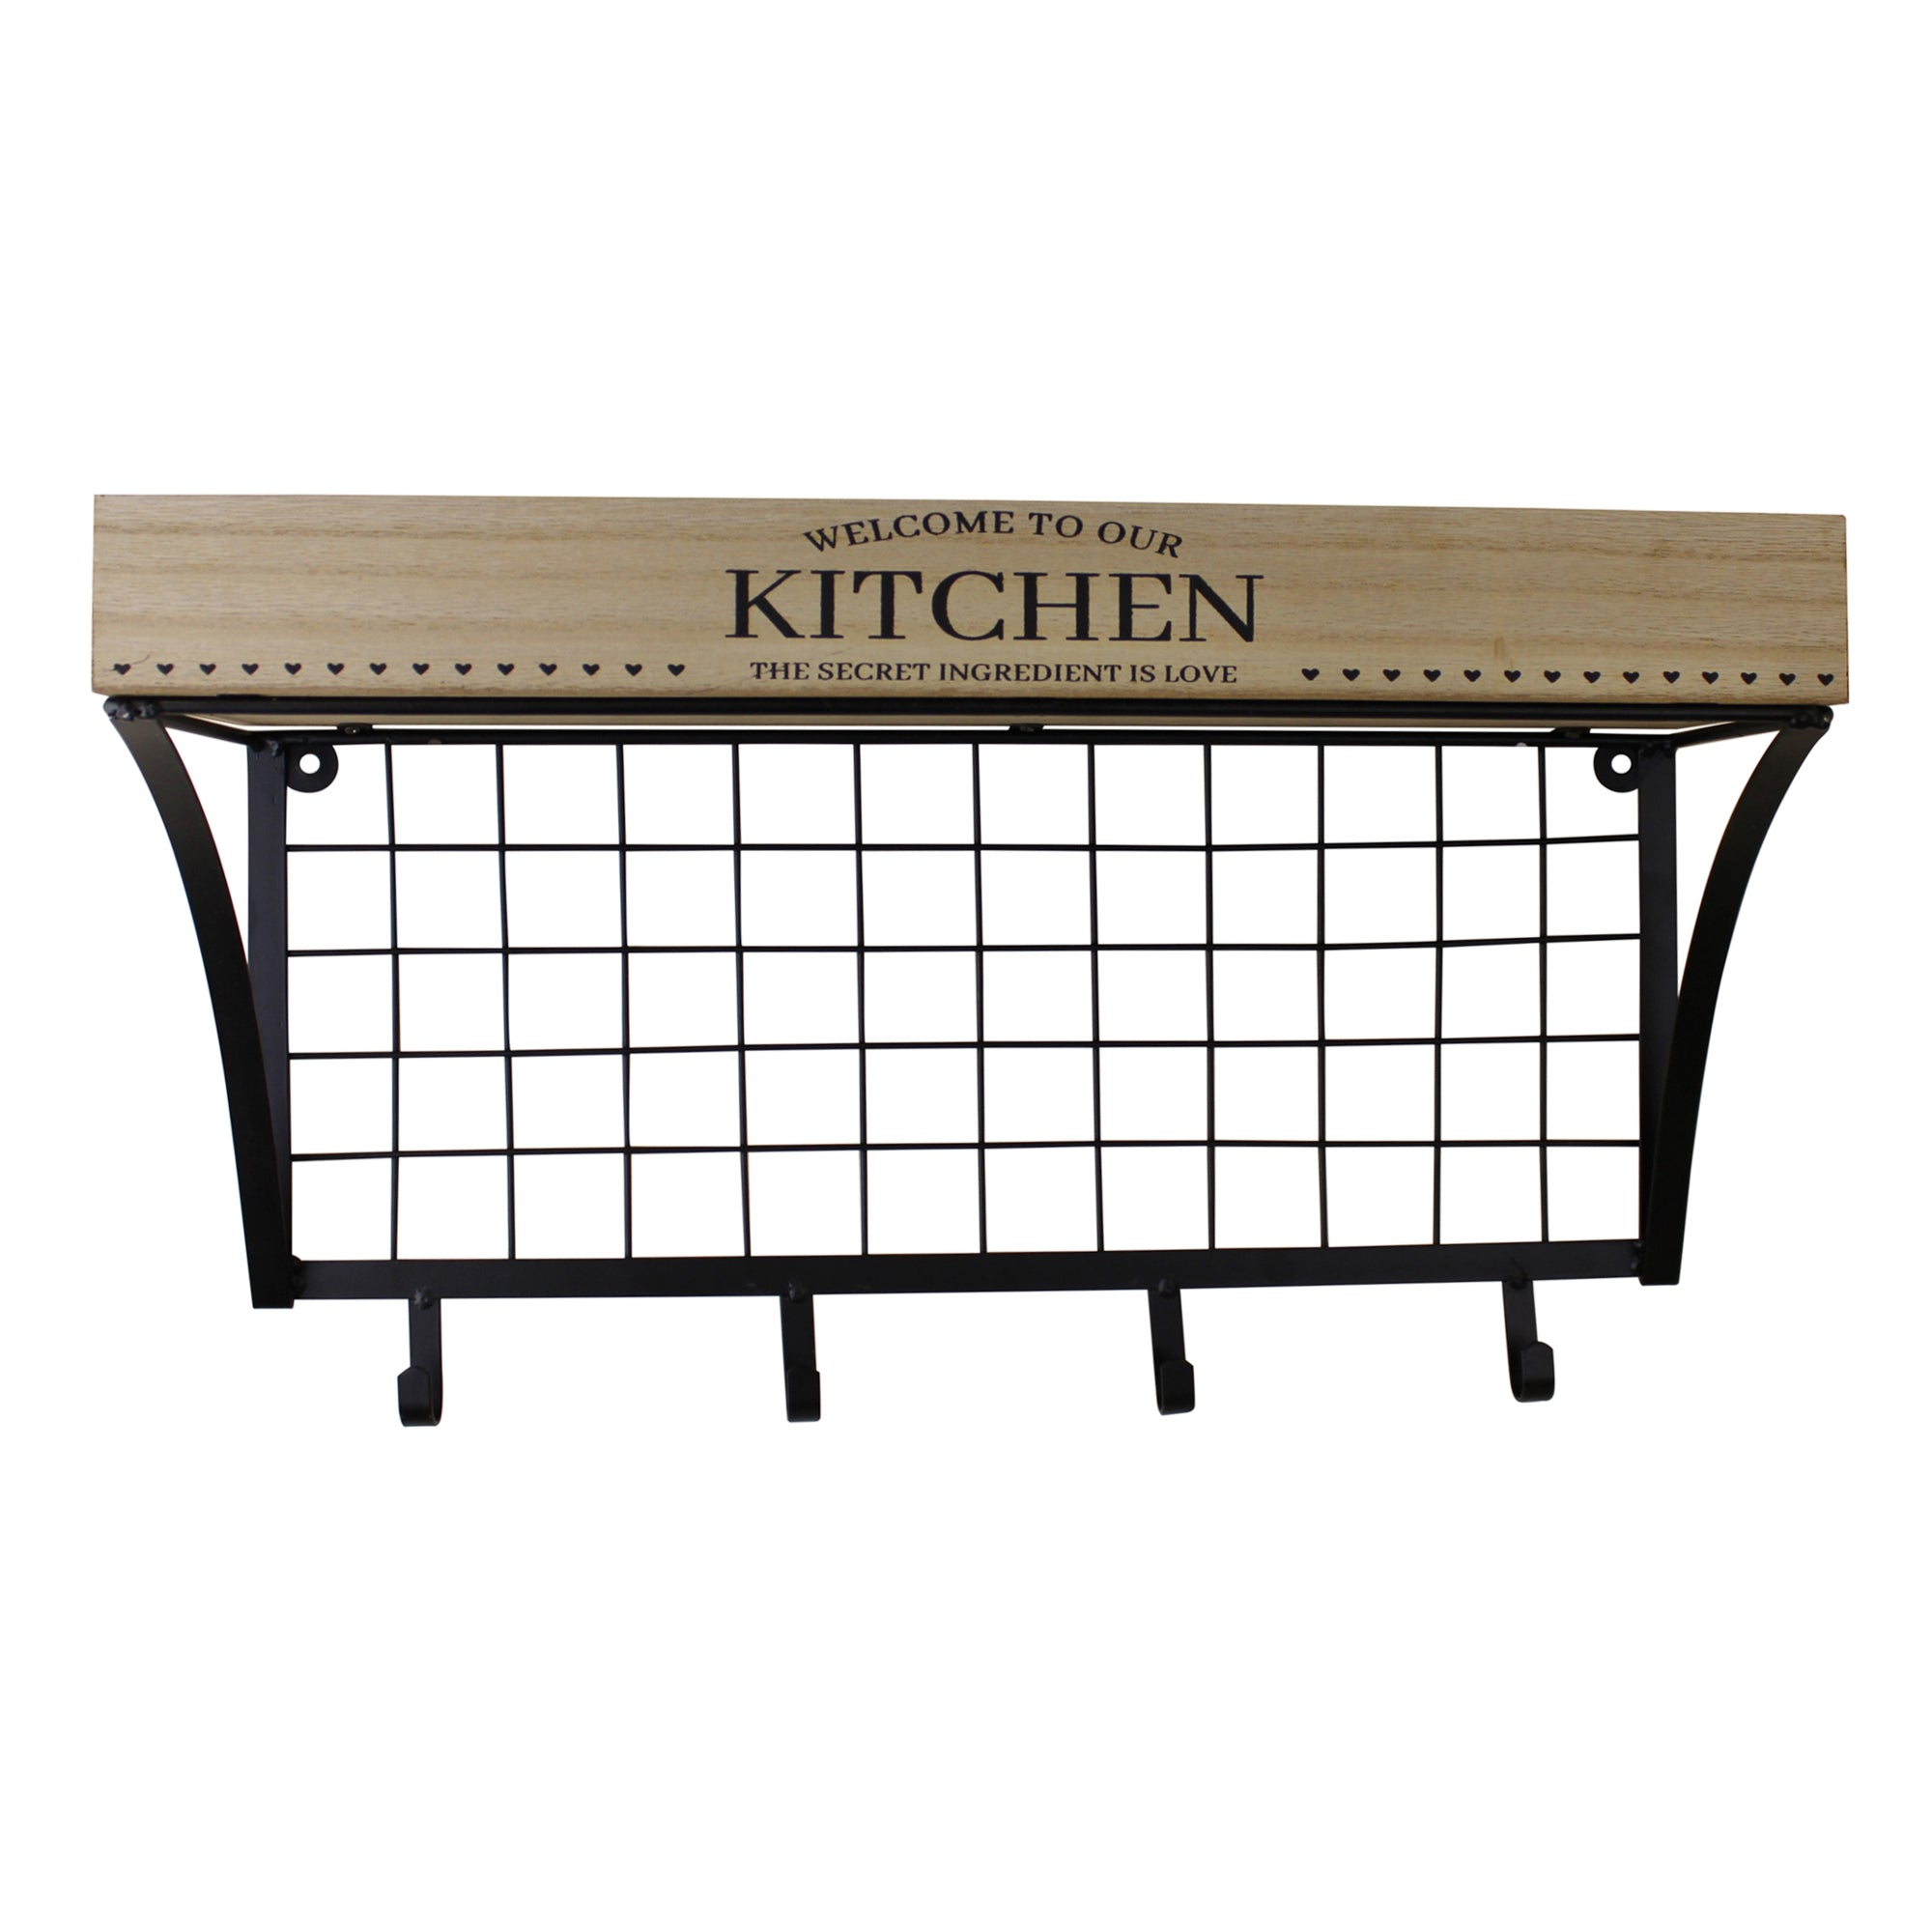 Wall Hanging Kitchen Shelf With Hooks, Clasps & Hooks by Low Cost Gifts